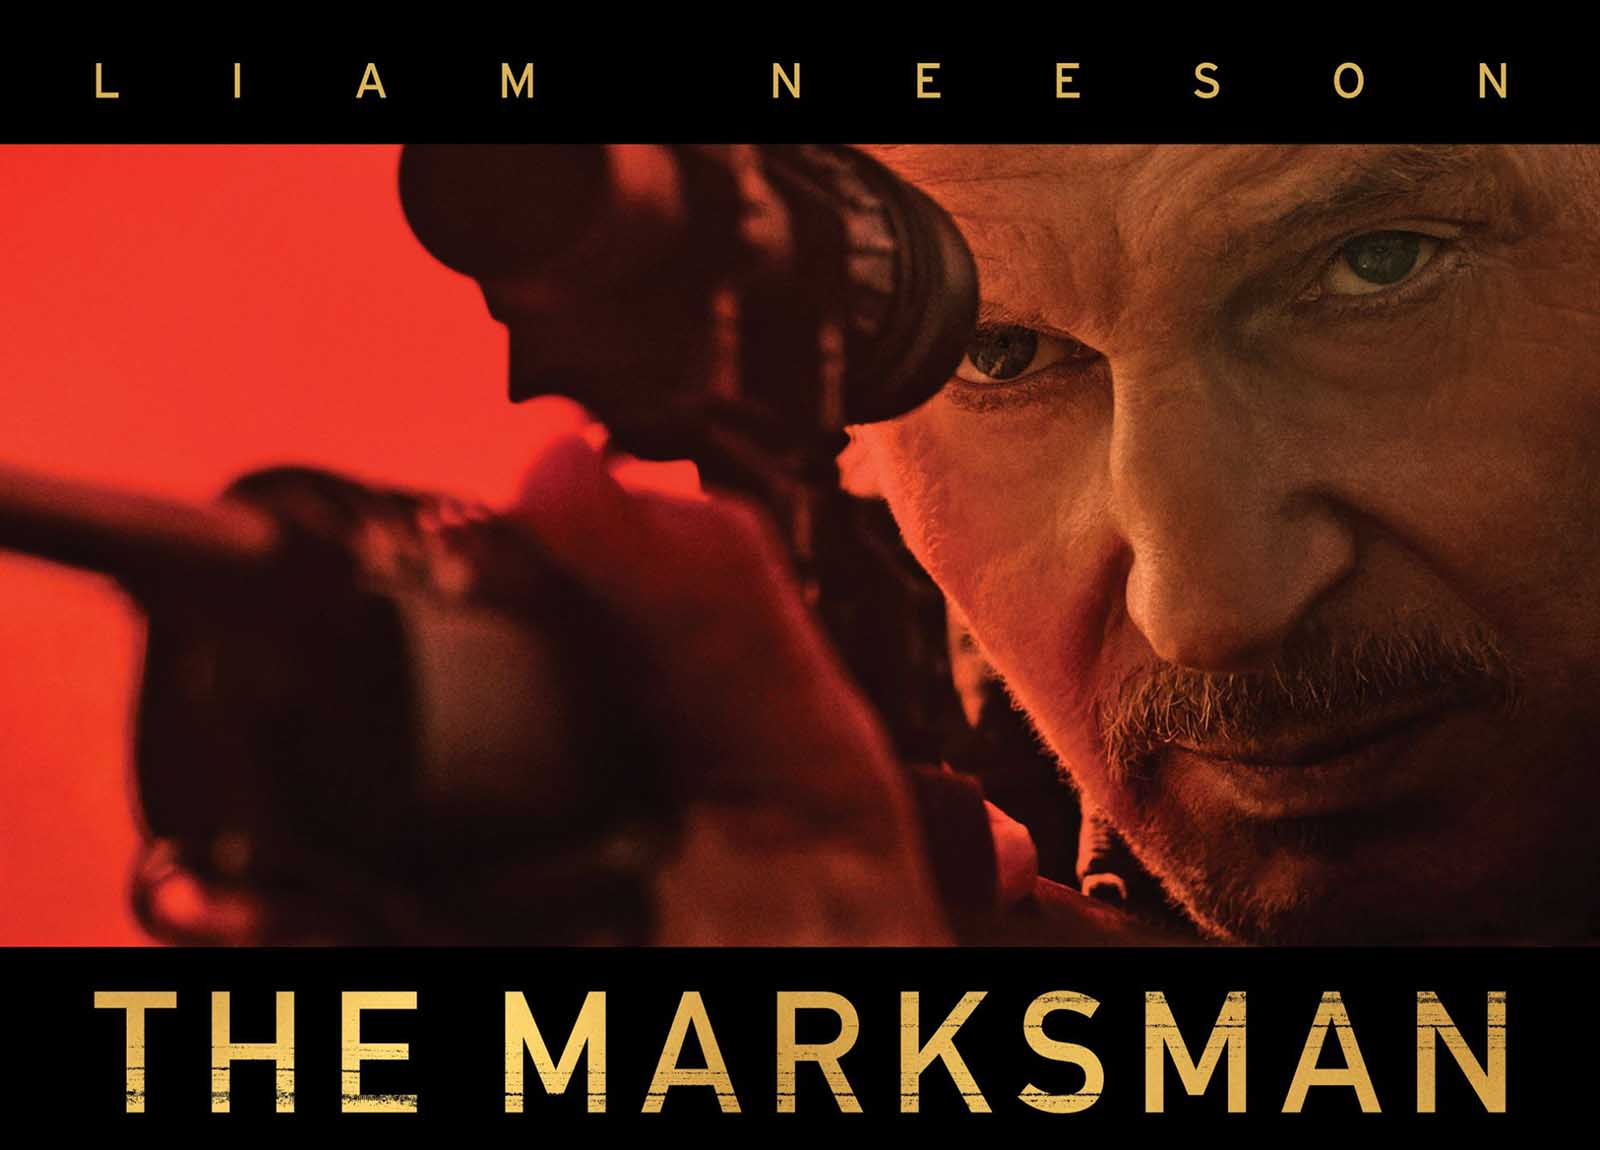 Want to watch 'The Marksman' this weekend? Here's where you can stream it using 123movies online!